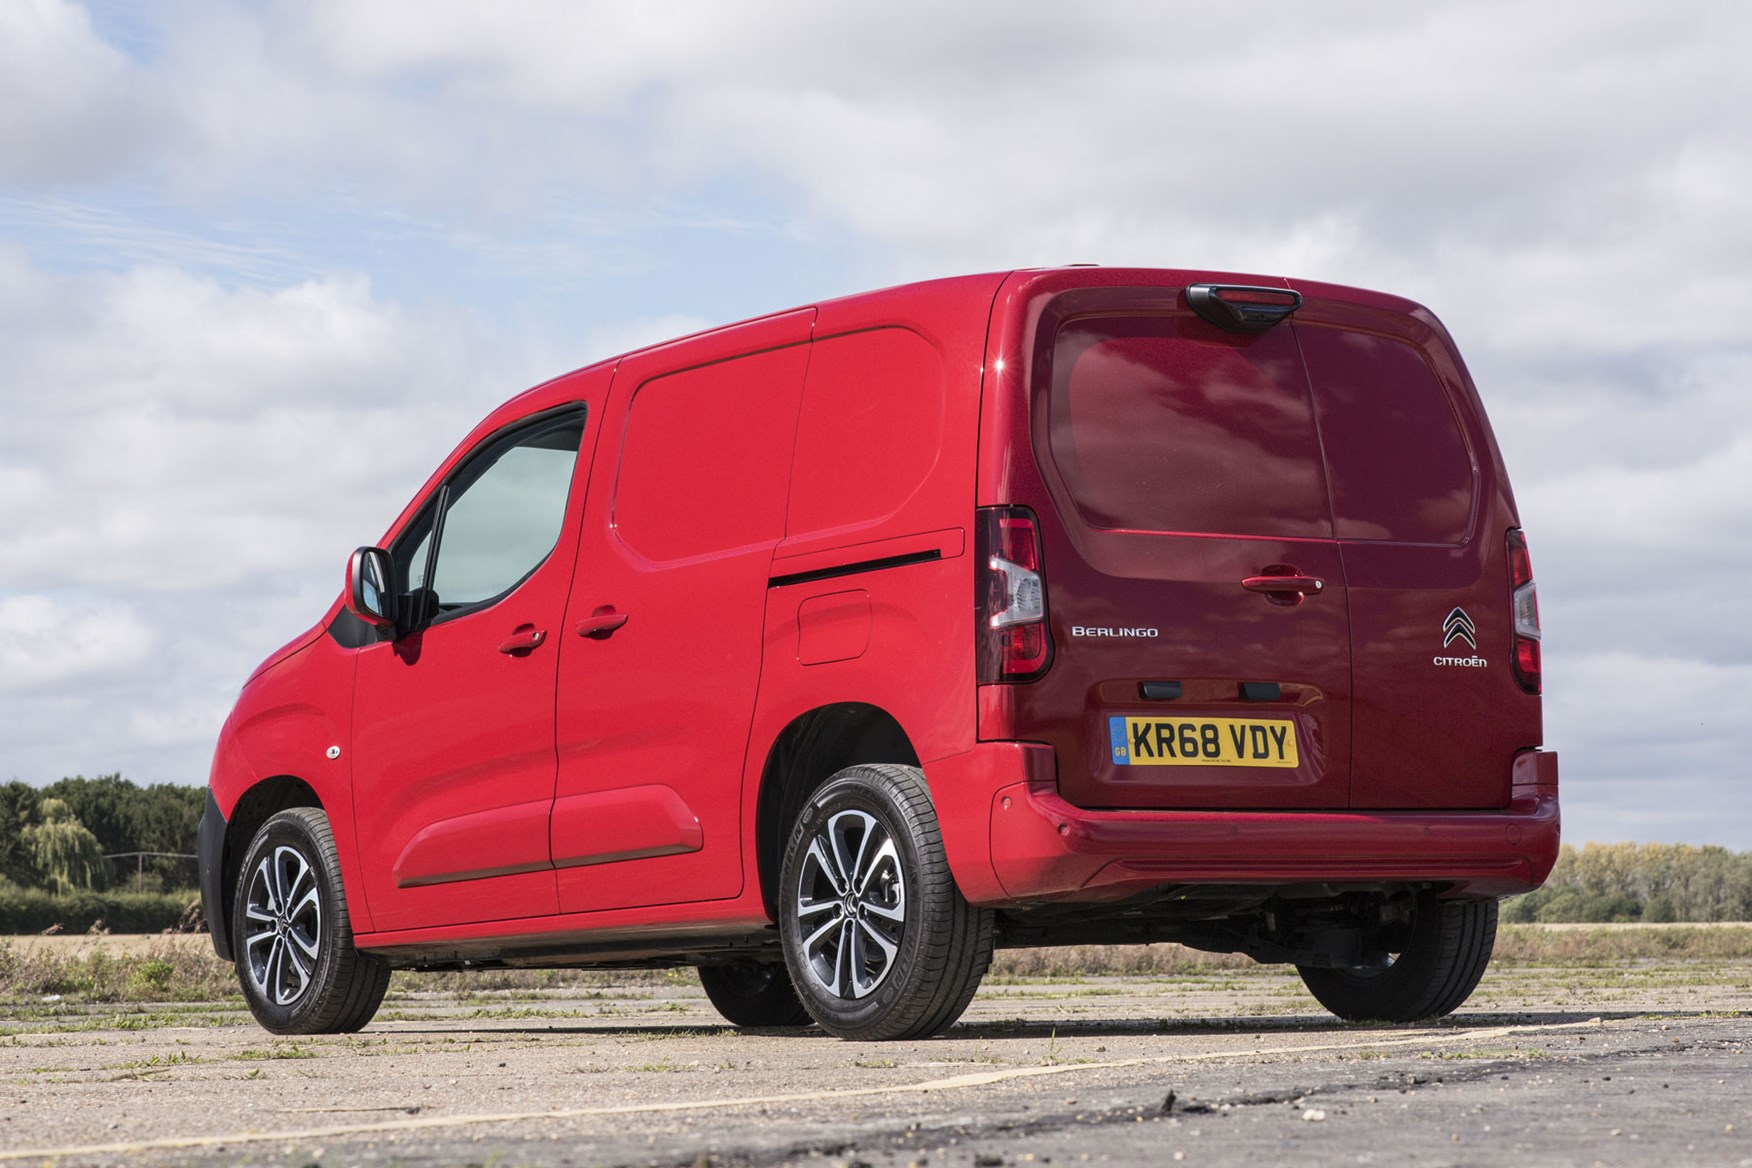 Citroen Berlingo van review - 2019 model, rear view, red